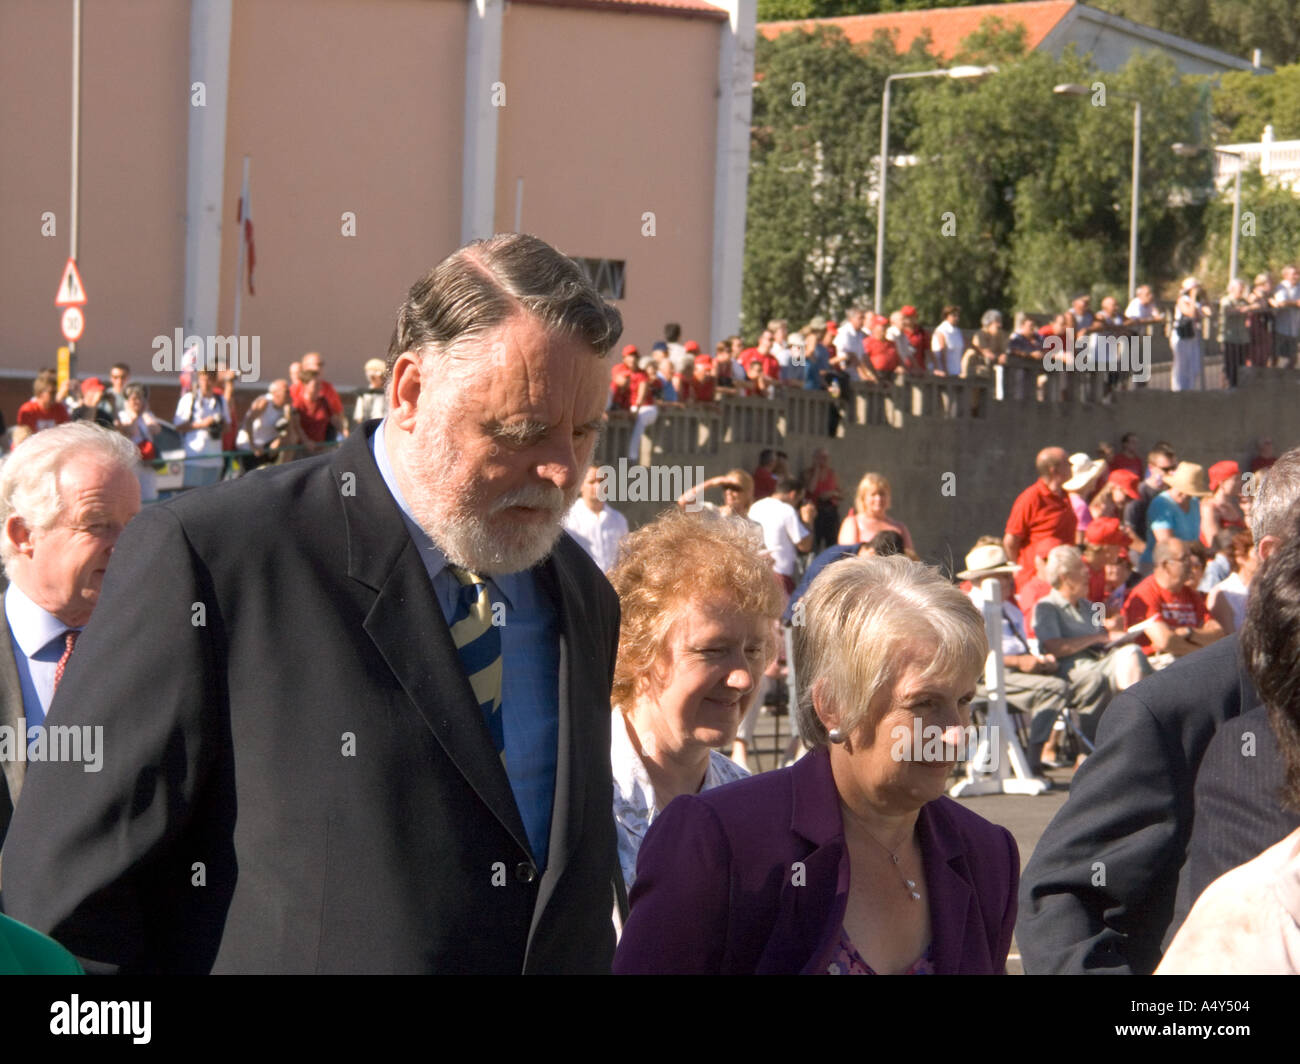 International mediator Terry Waite, an invited guest, attending the Honorary Freedom of the City of Gibraltar ceremony - Stock Image